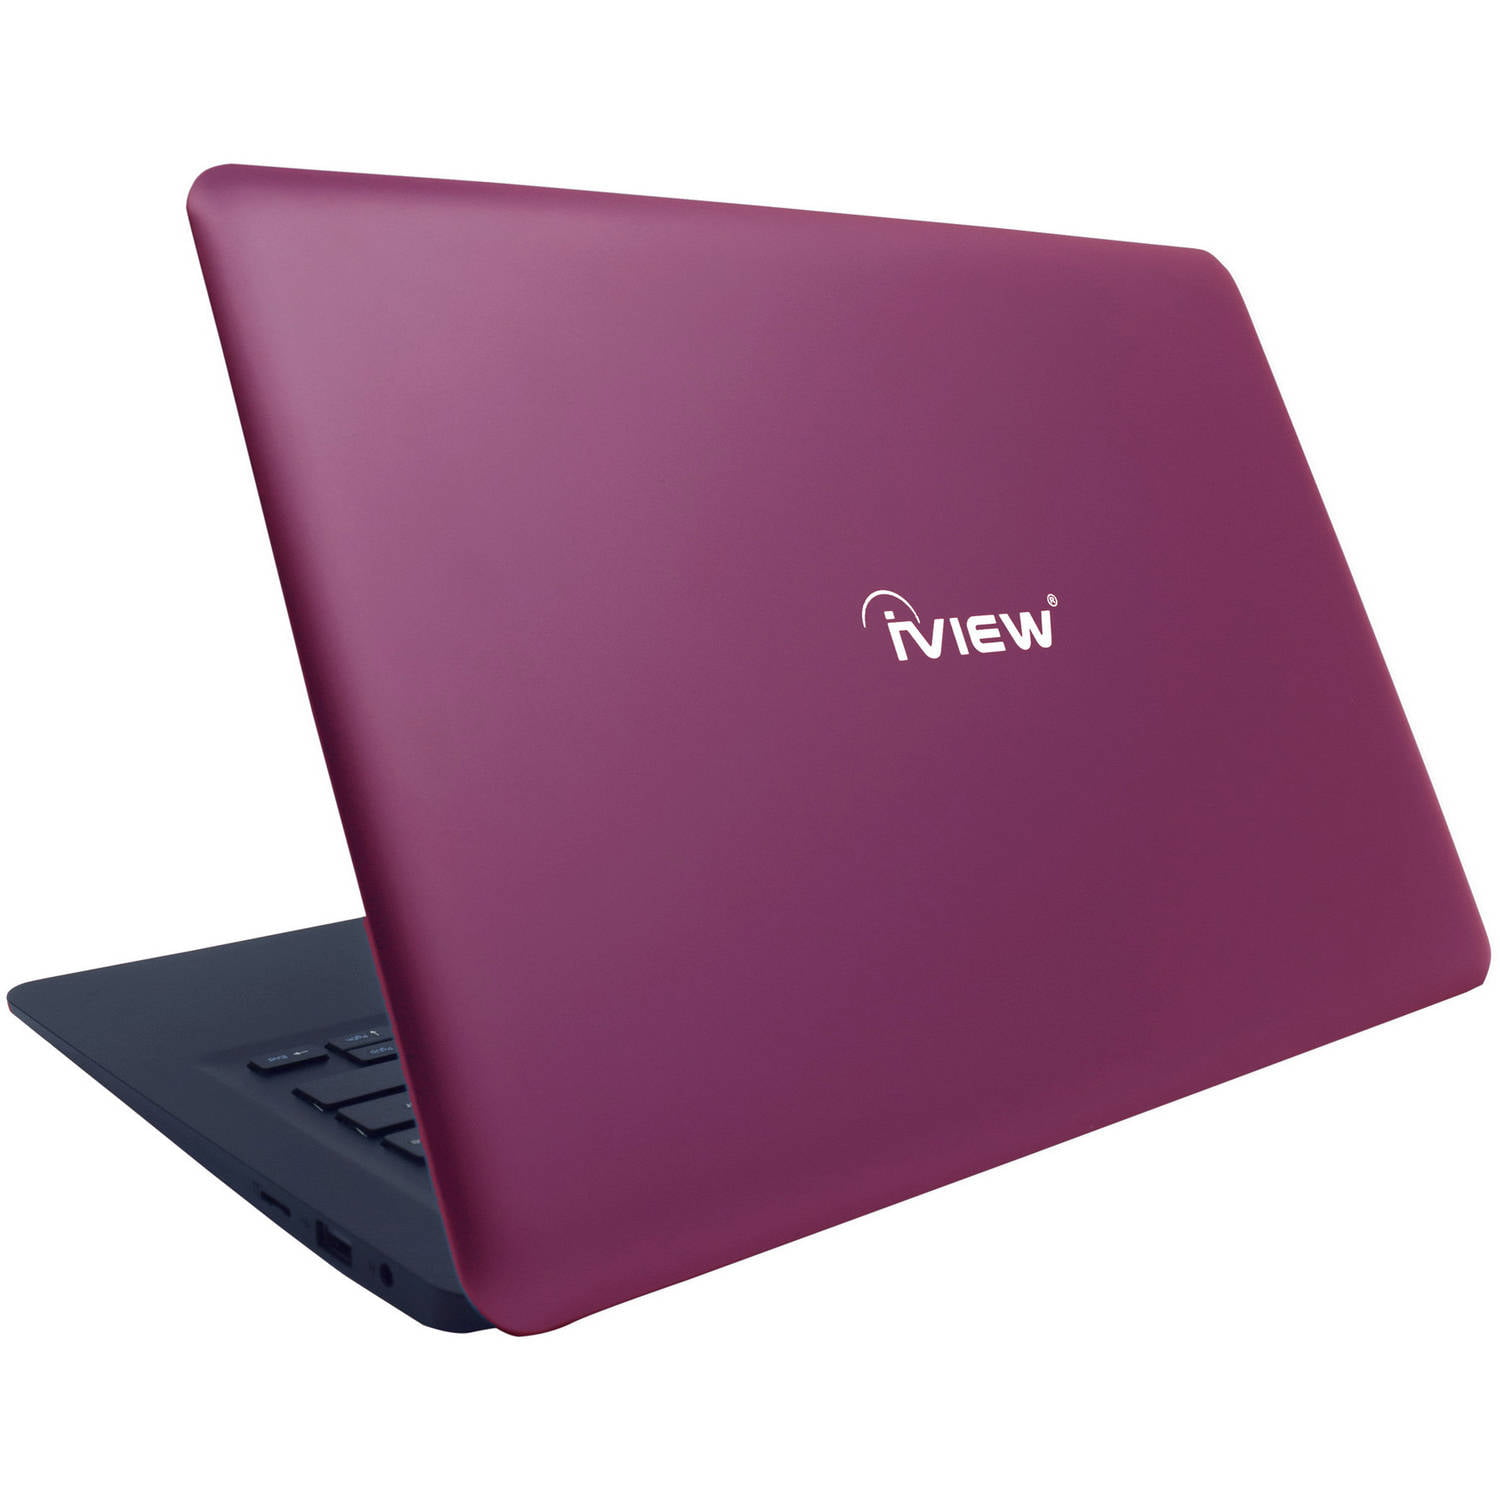 """IVIEW-13.3"""" Laptop PC with Intel Atom Cherry Trail Z8300 , 2GB , 32GB Pink by IVIEW"""